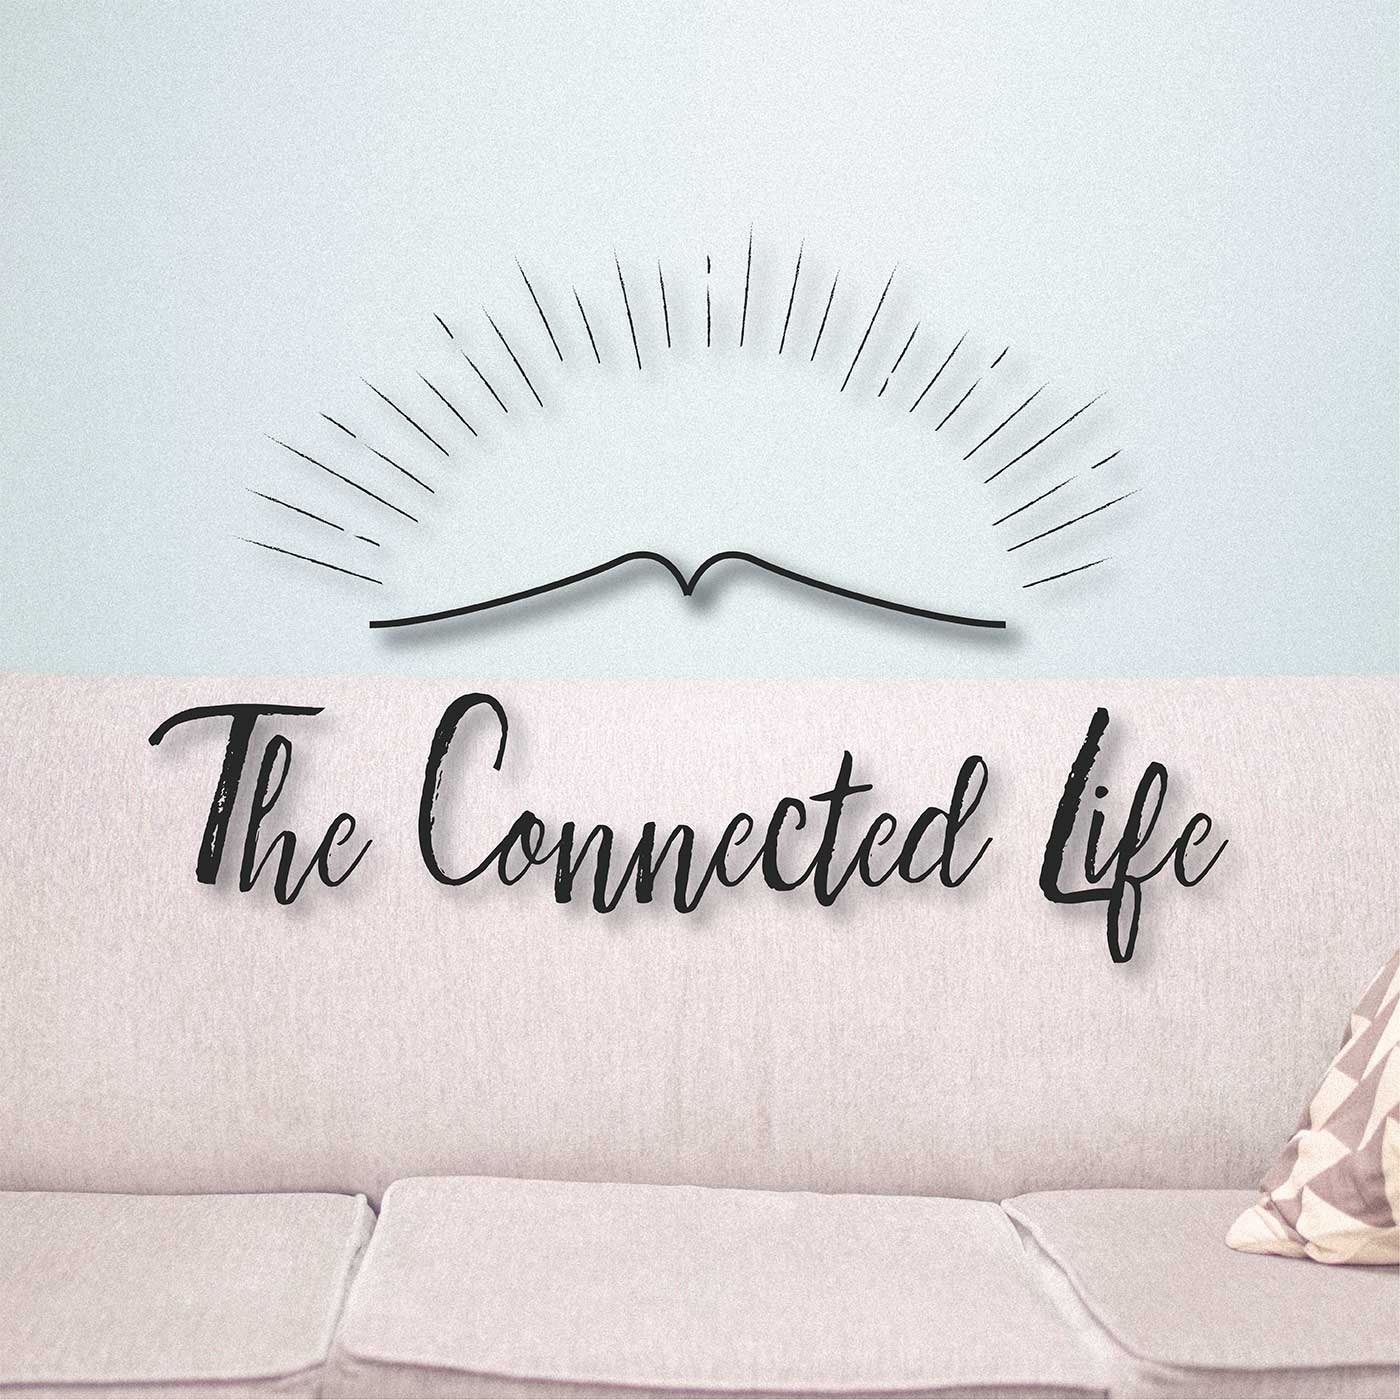 The Connected Life Book Club show art